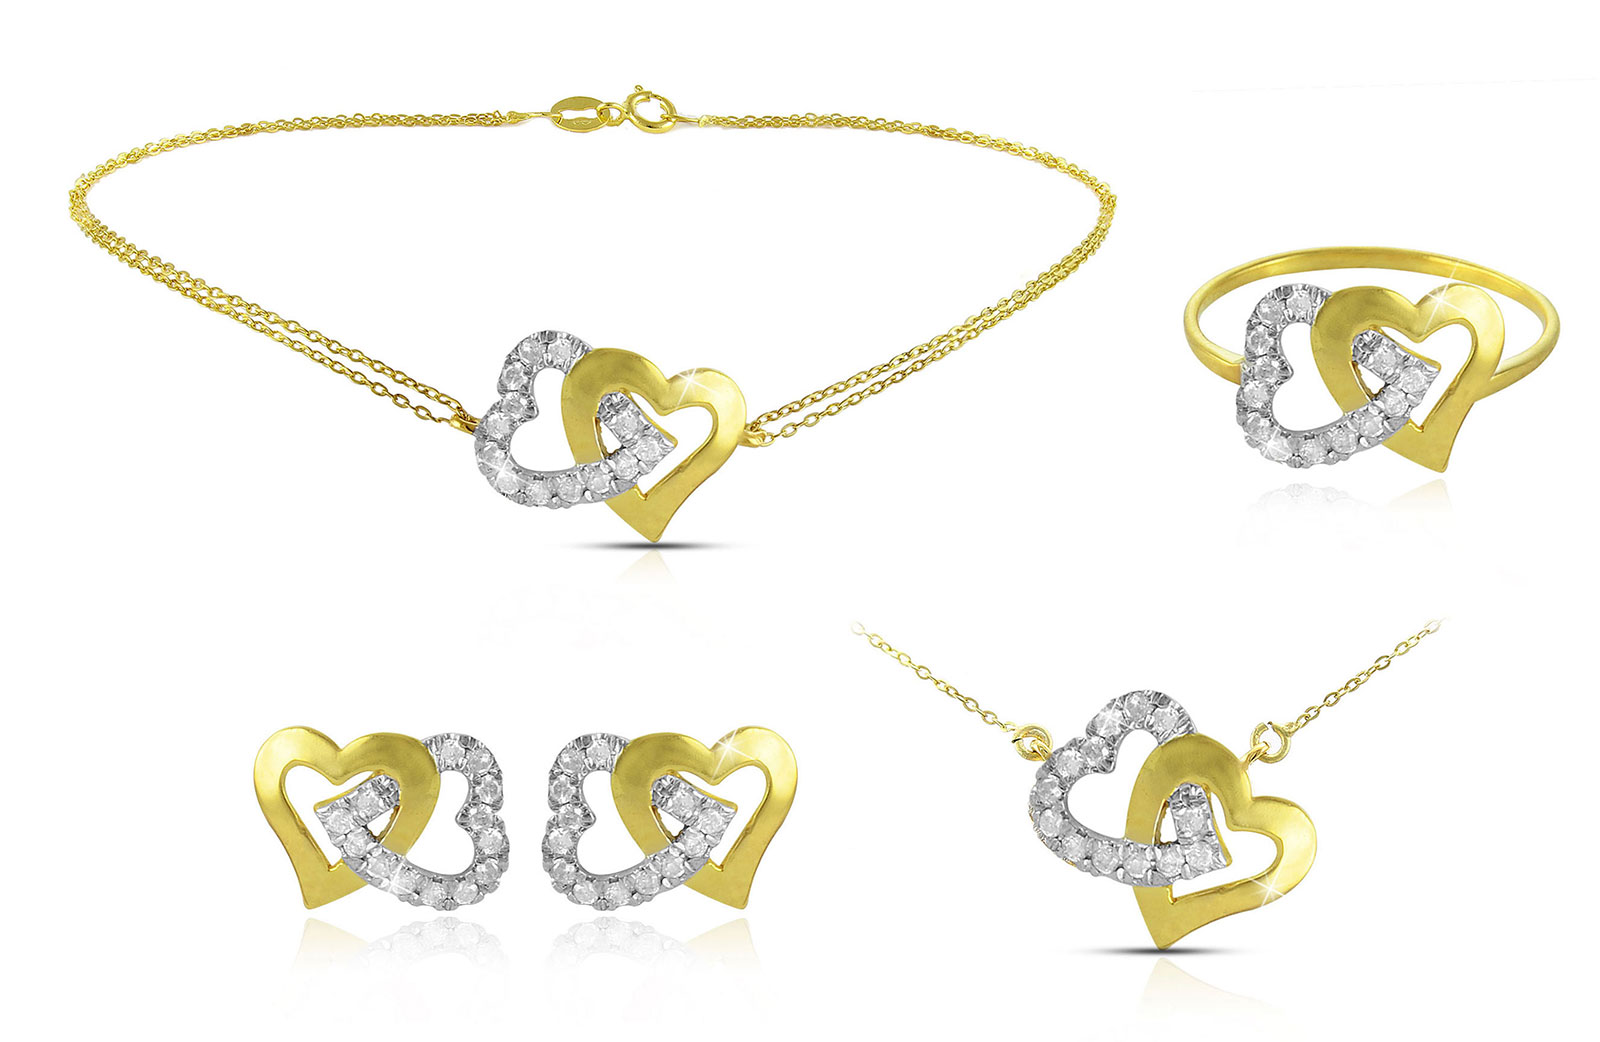 Vera Perla  18K Solid Gold and 0.11Cts Diamonds Interlocking Hearts Necklace, Bracelet, Earrings, Ring